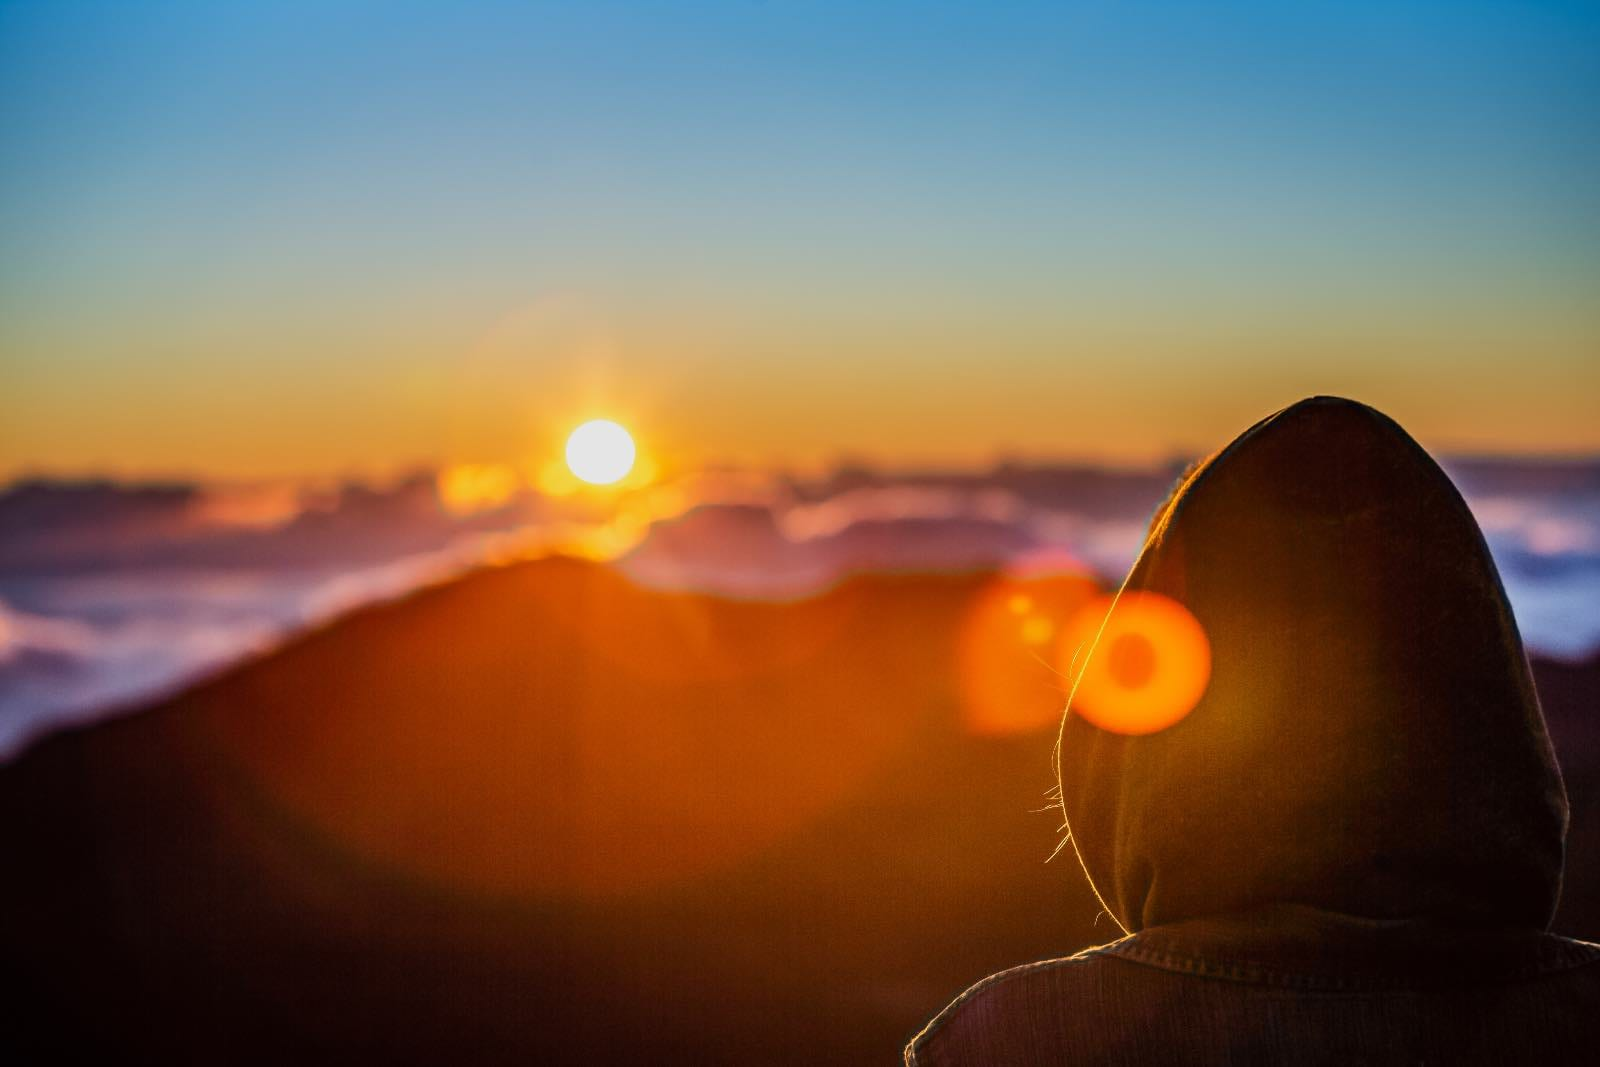 Sunrise atop Haleakala volcano on Maui